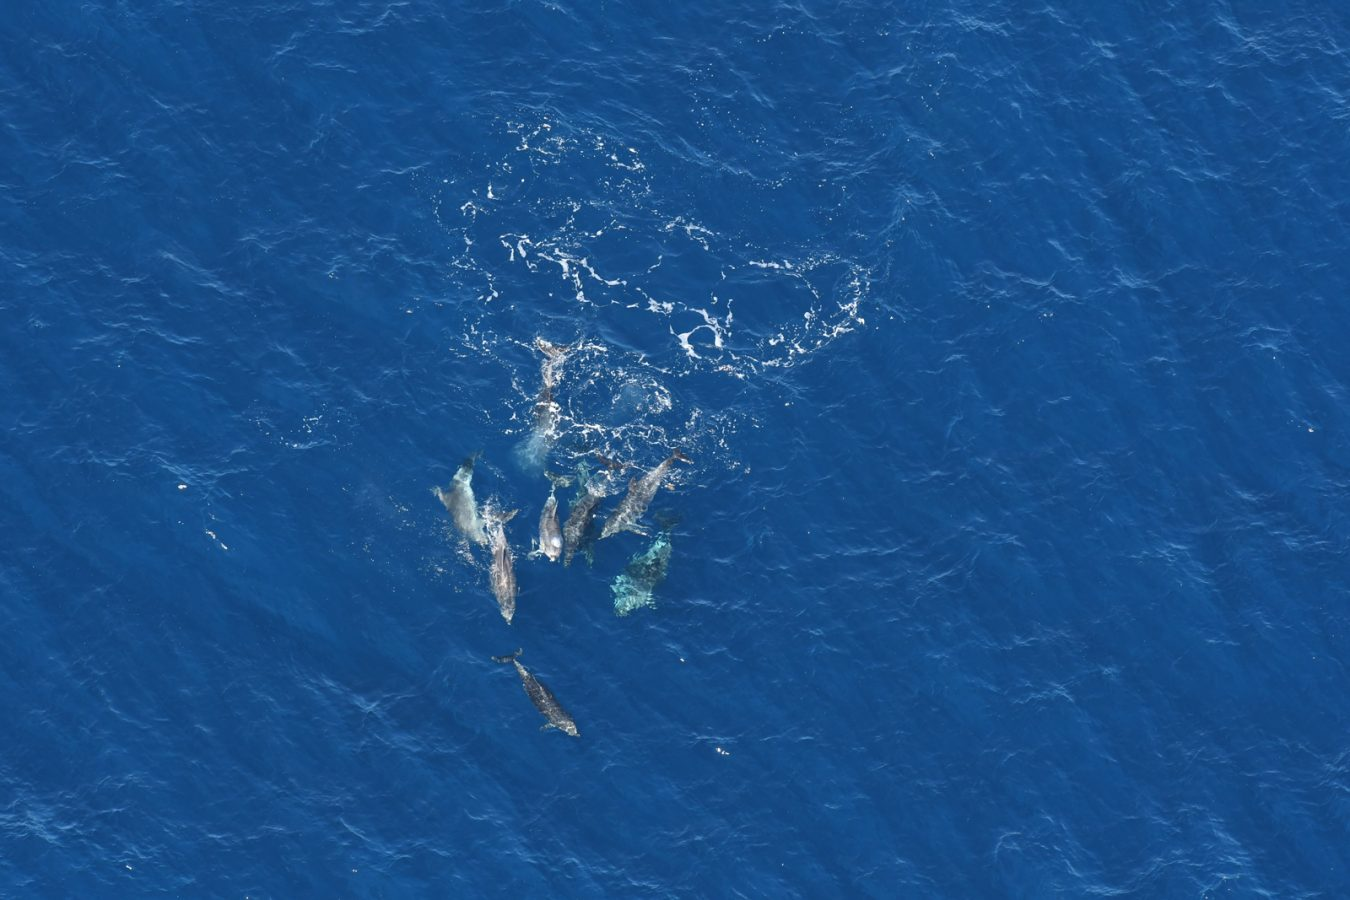 A group of bottlenose dolphins roll and splash at the surface.